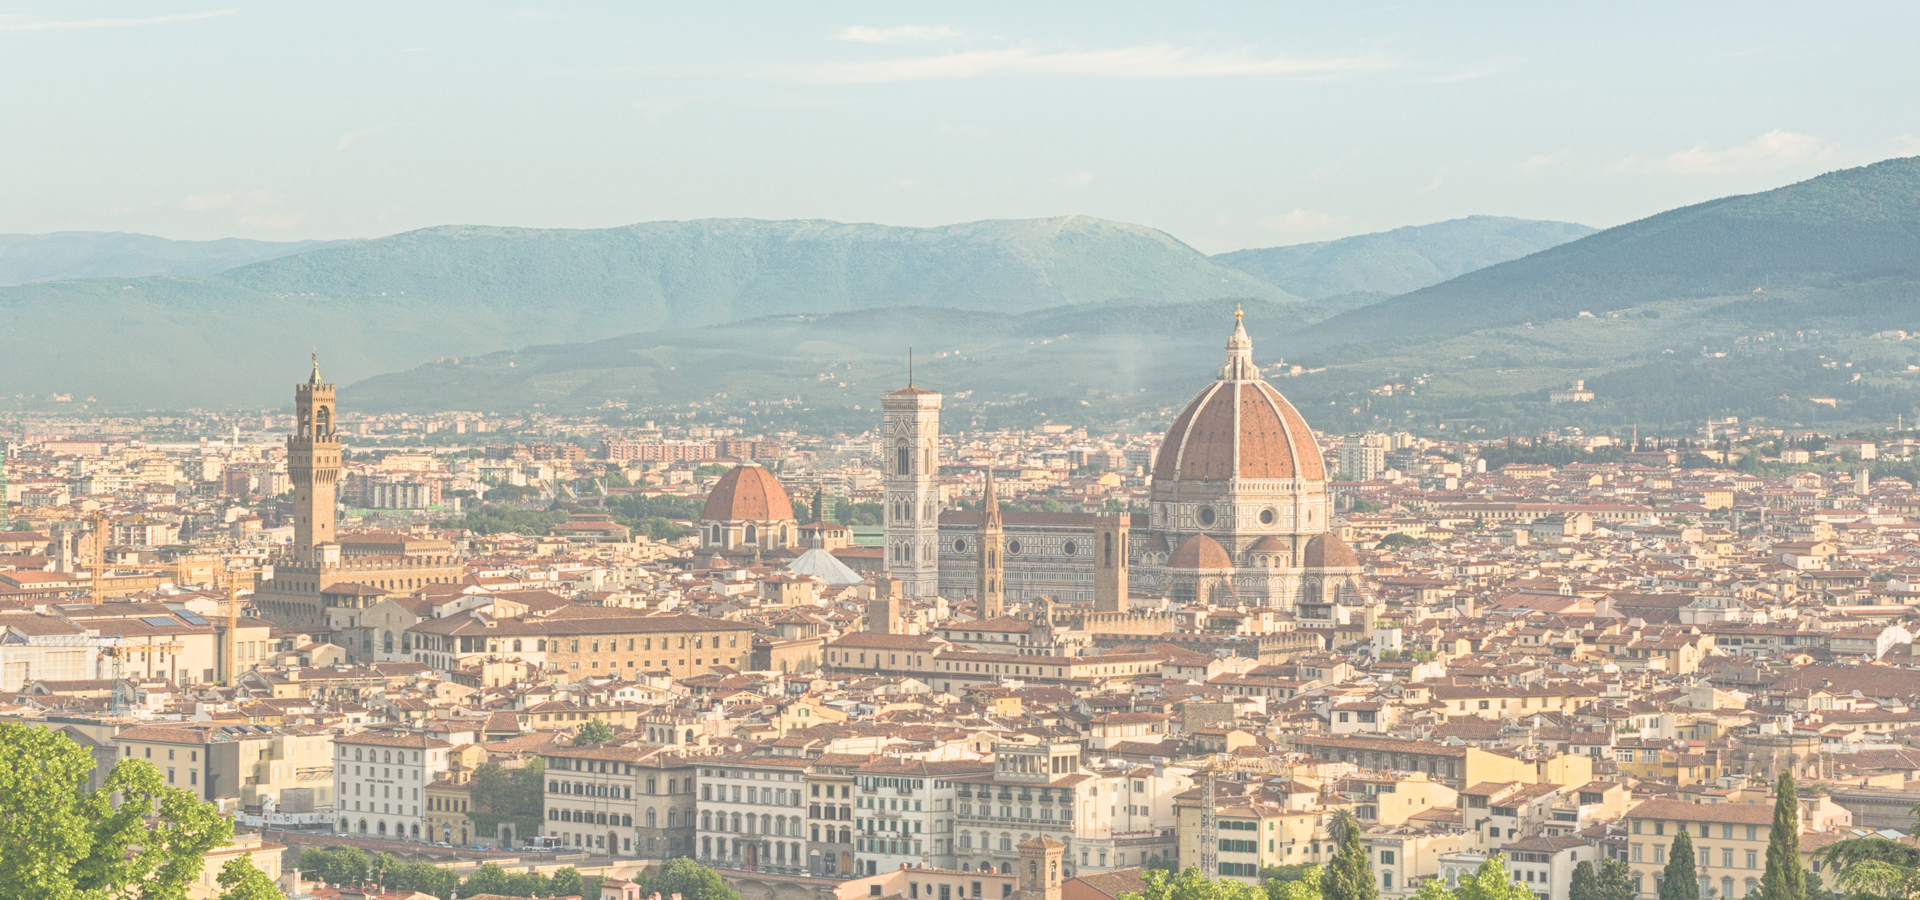 Florence, Central Italy, Italy